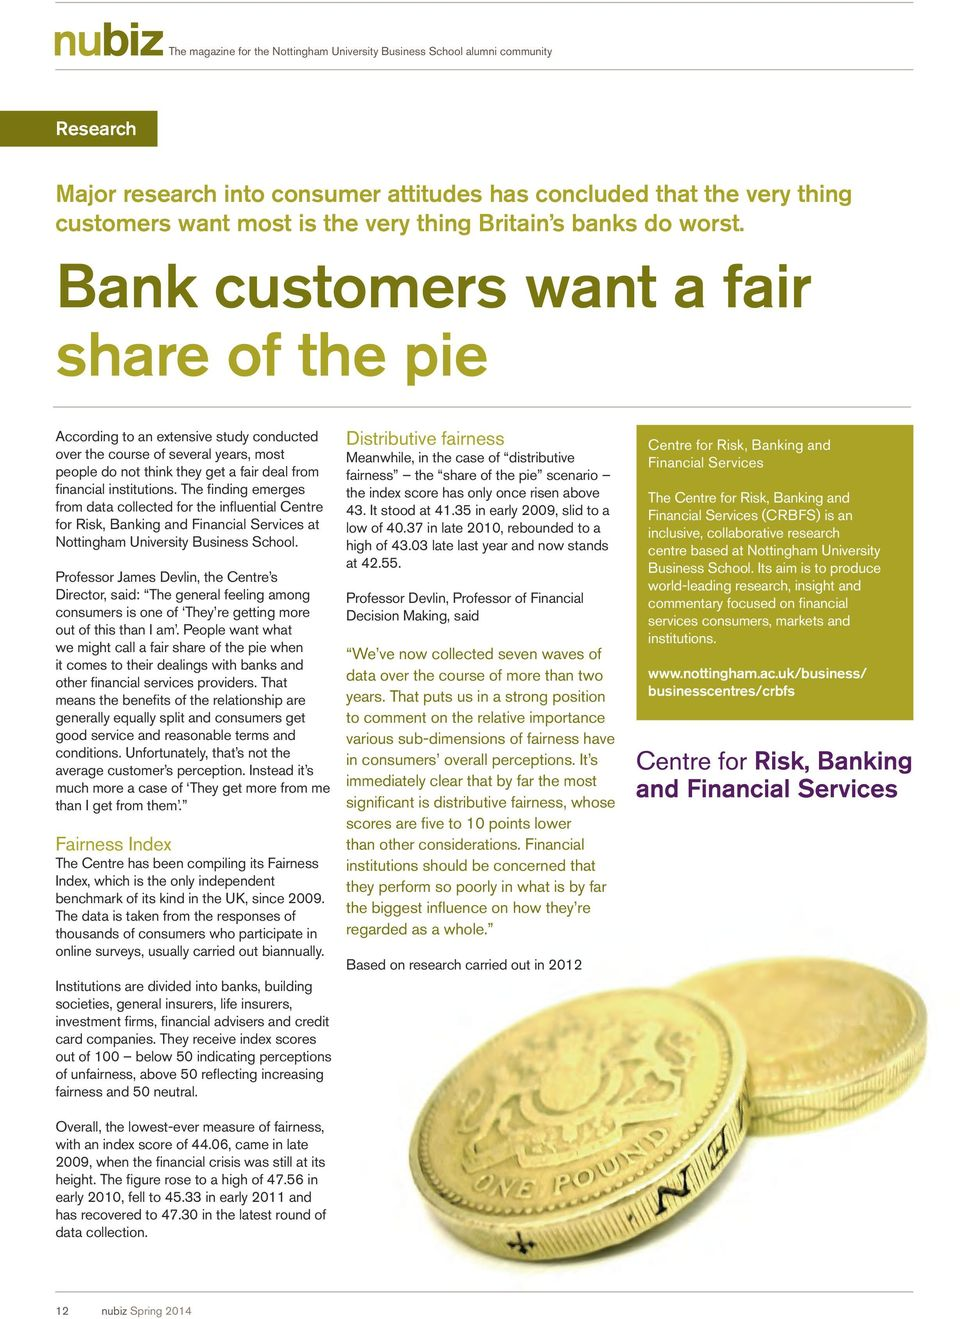 Bank customers want a fair share of the pie According to an extensive study conducted over the course of several years, most people do not think they get a fair deal from financial institutions.